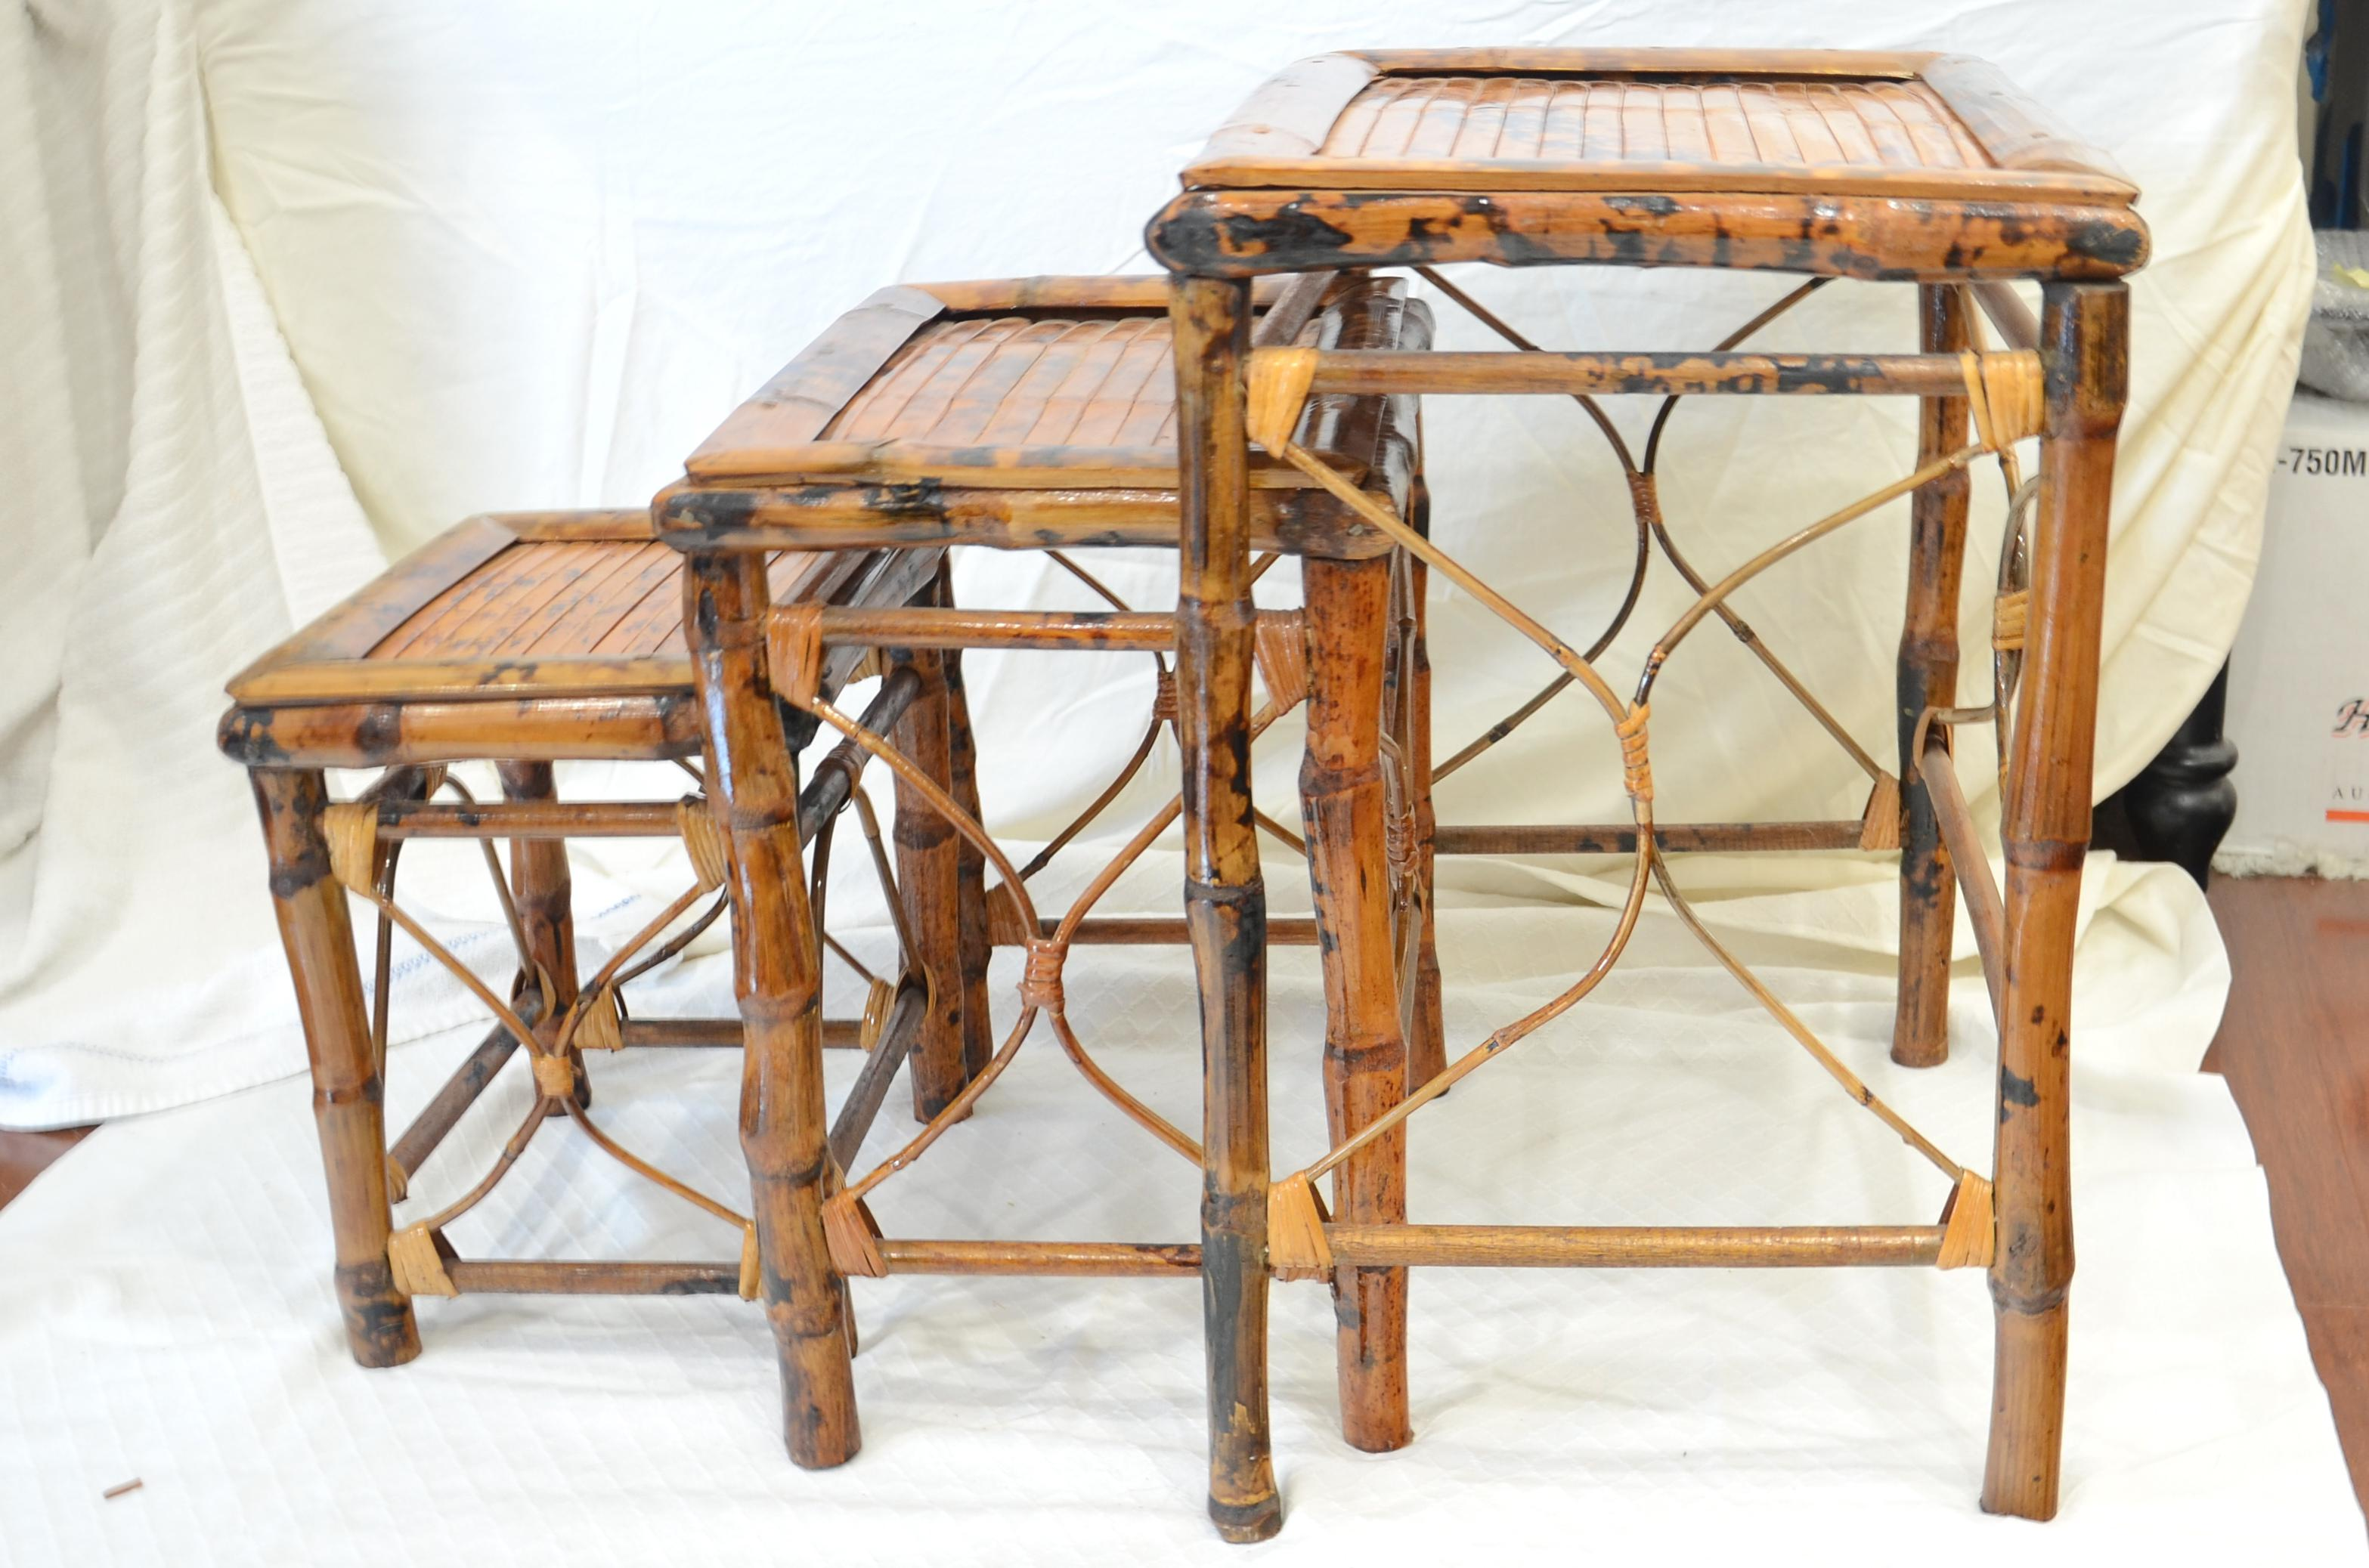 Vintage Bamboo Nesting Tables - Set of 3 - Image 3 of 7  sc 1 st  Chairish & Vintage Bamboo Nesting Tables - Set of 3 | Chairish